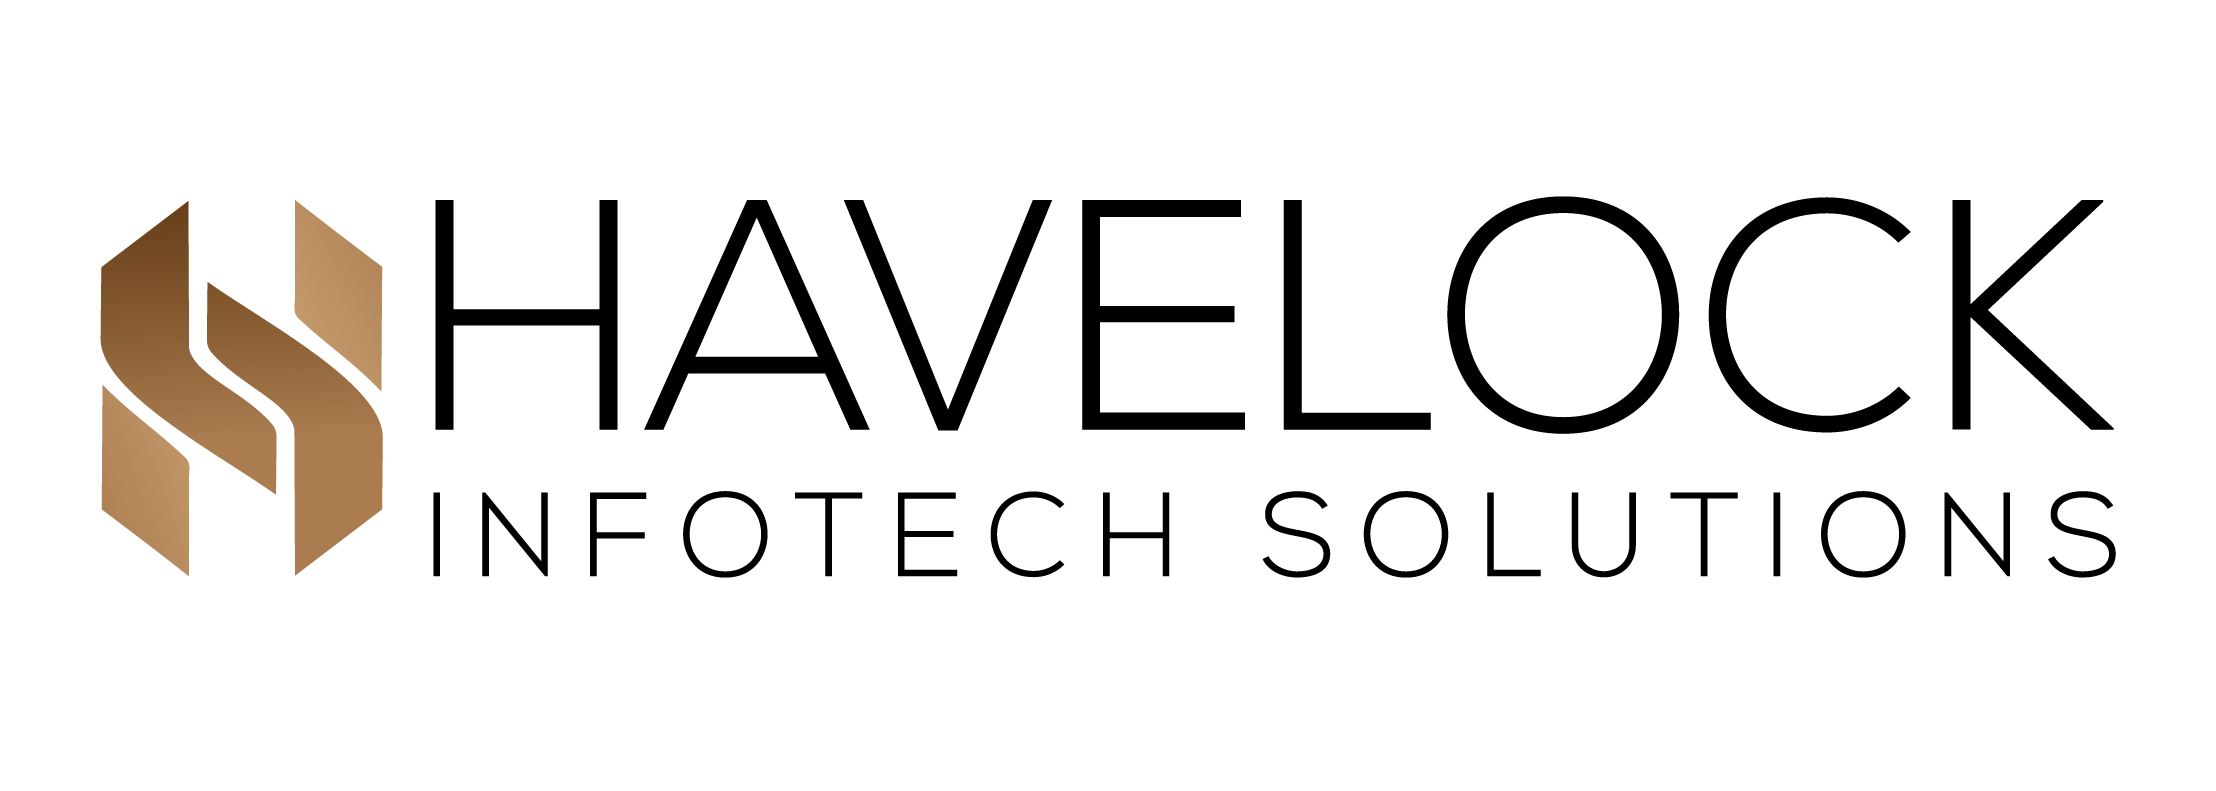 Havelock Infotech Solutions